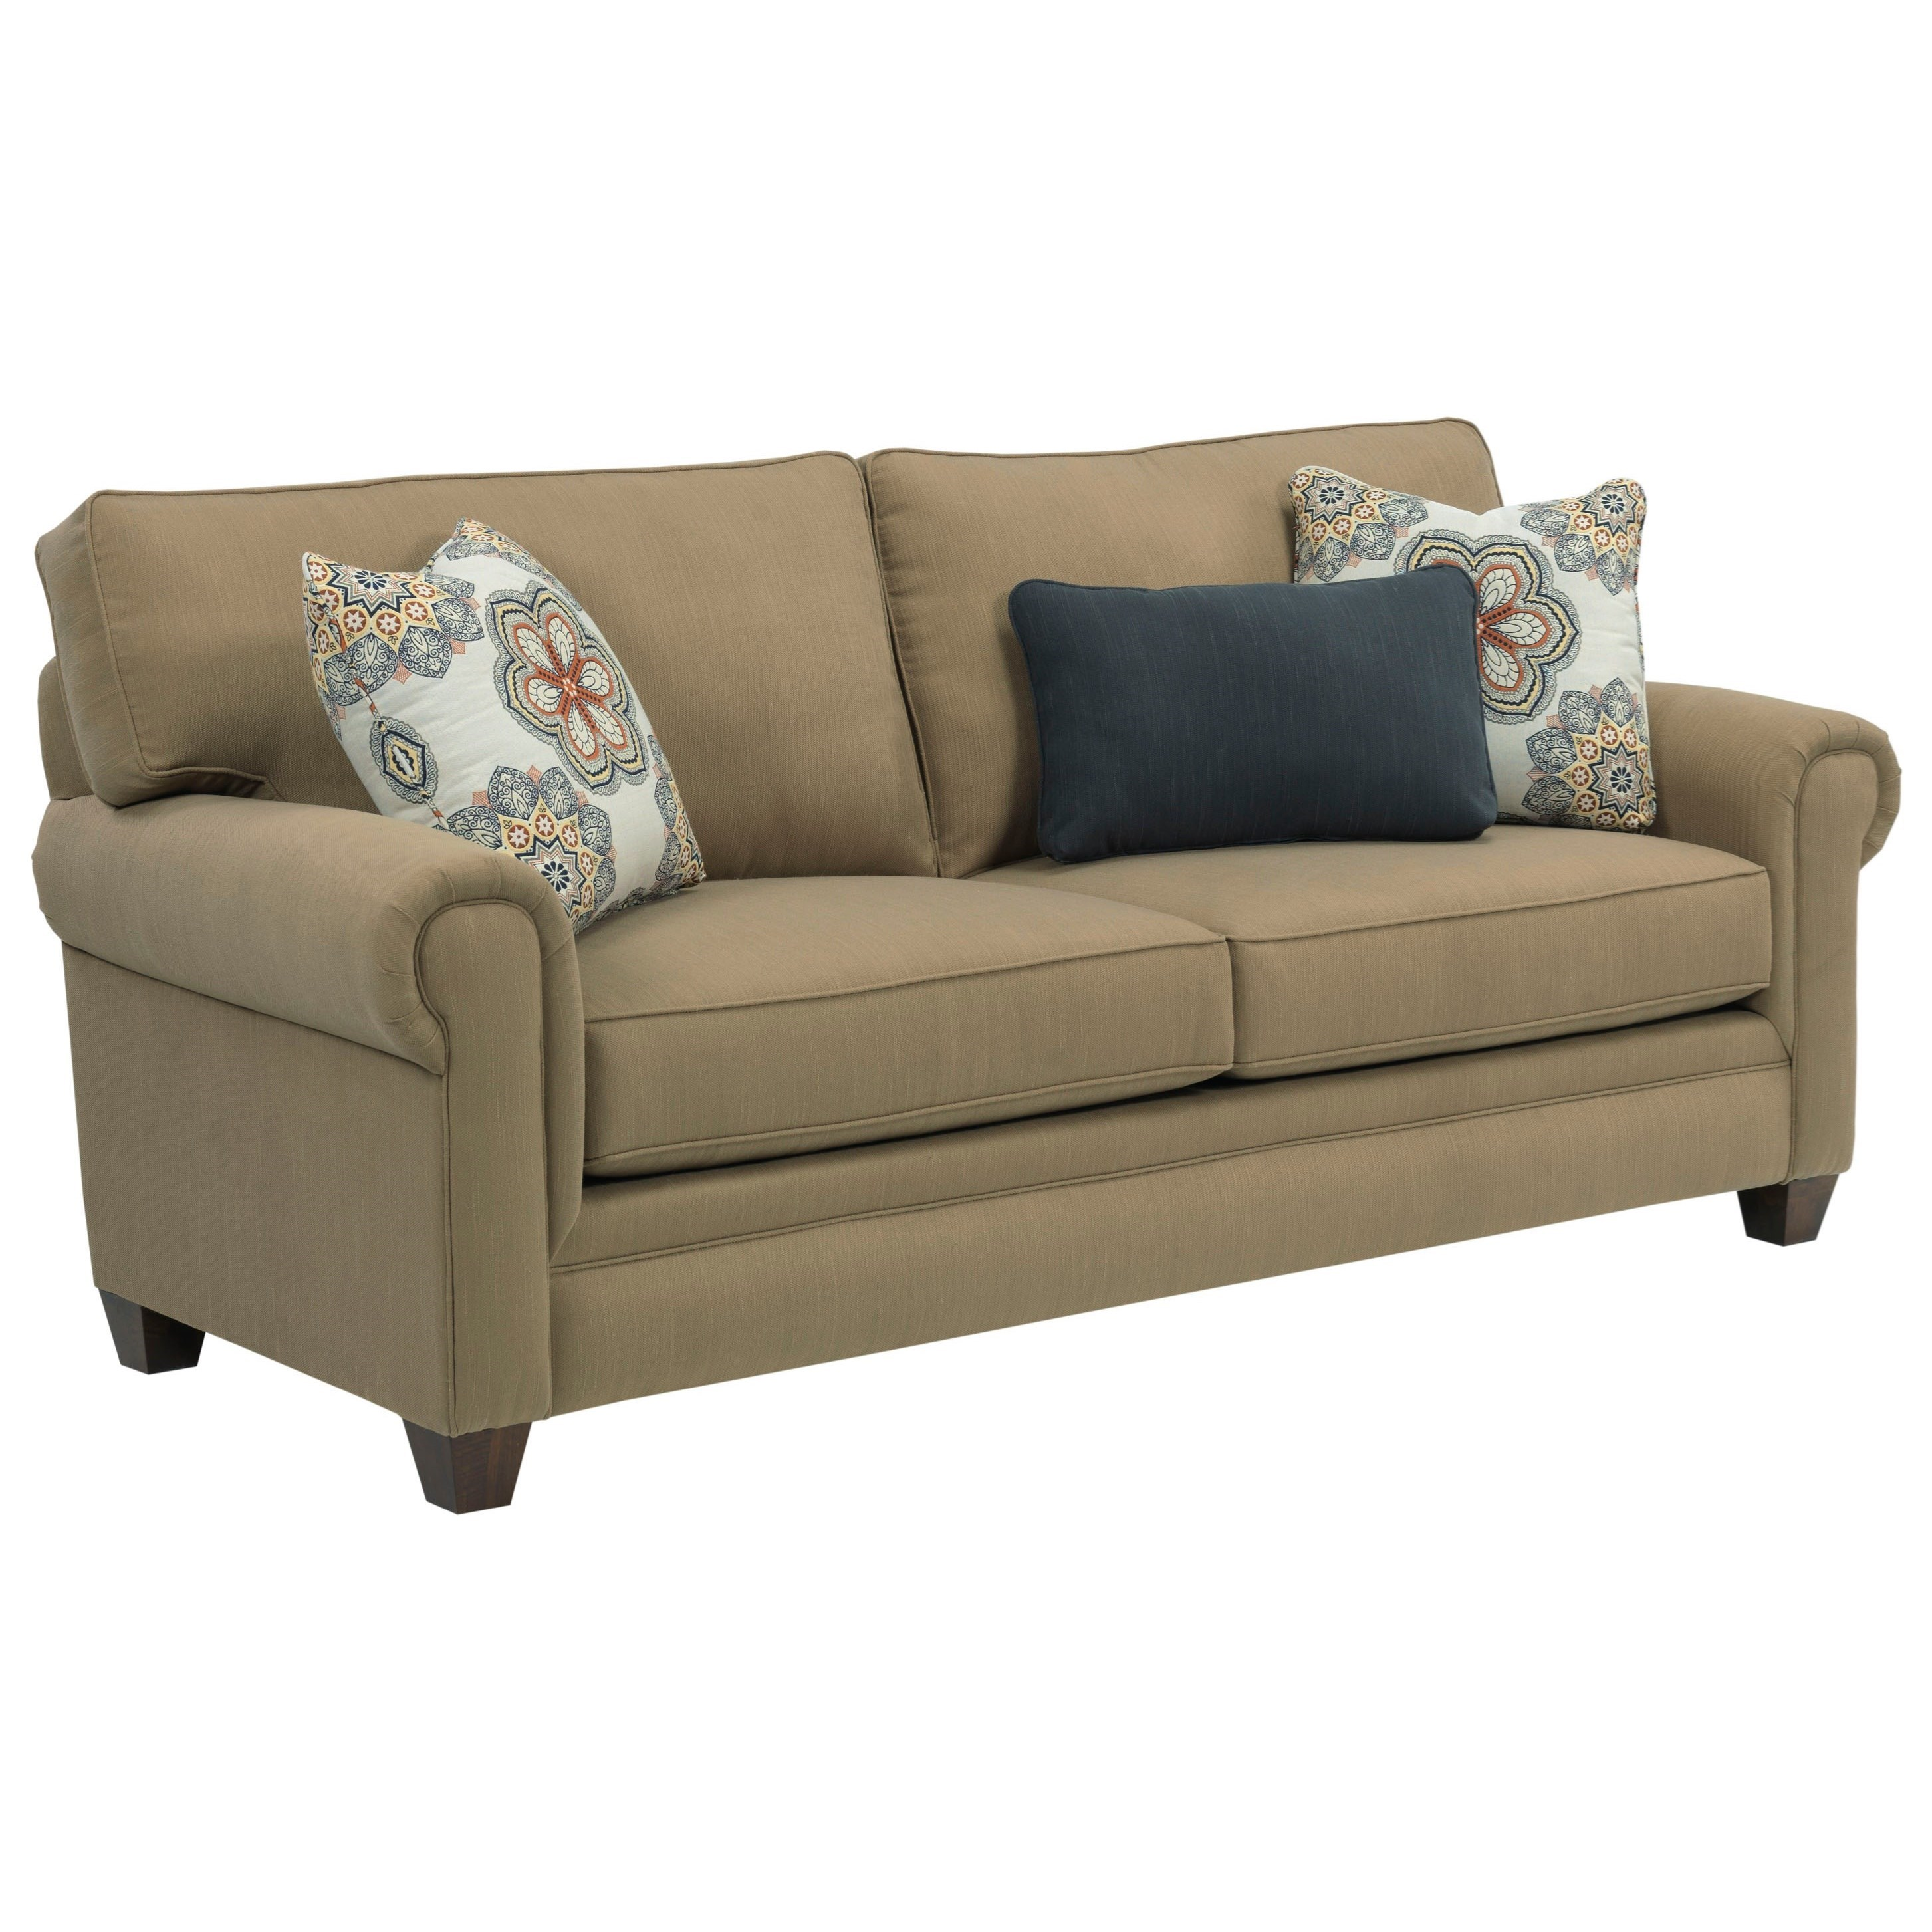 broyhill furniture monica transitional queen air dream sleeper sofa with rolled arms knight. Black Bedroom Furniture Sets. Home Design Ideas